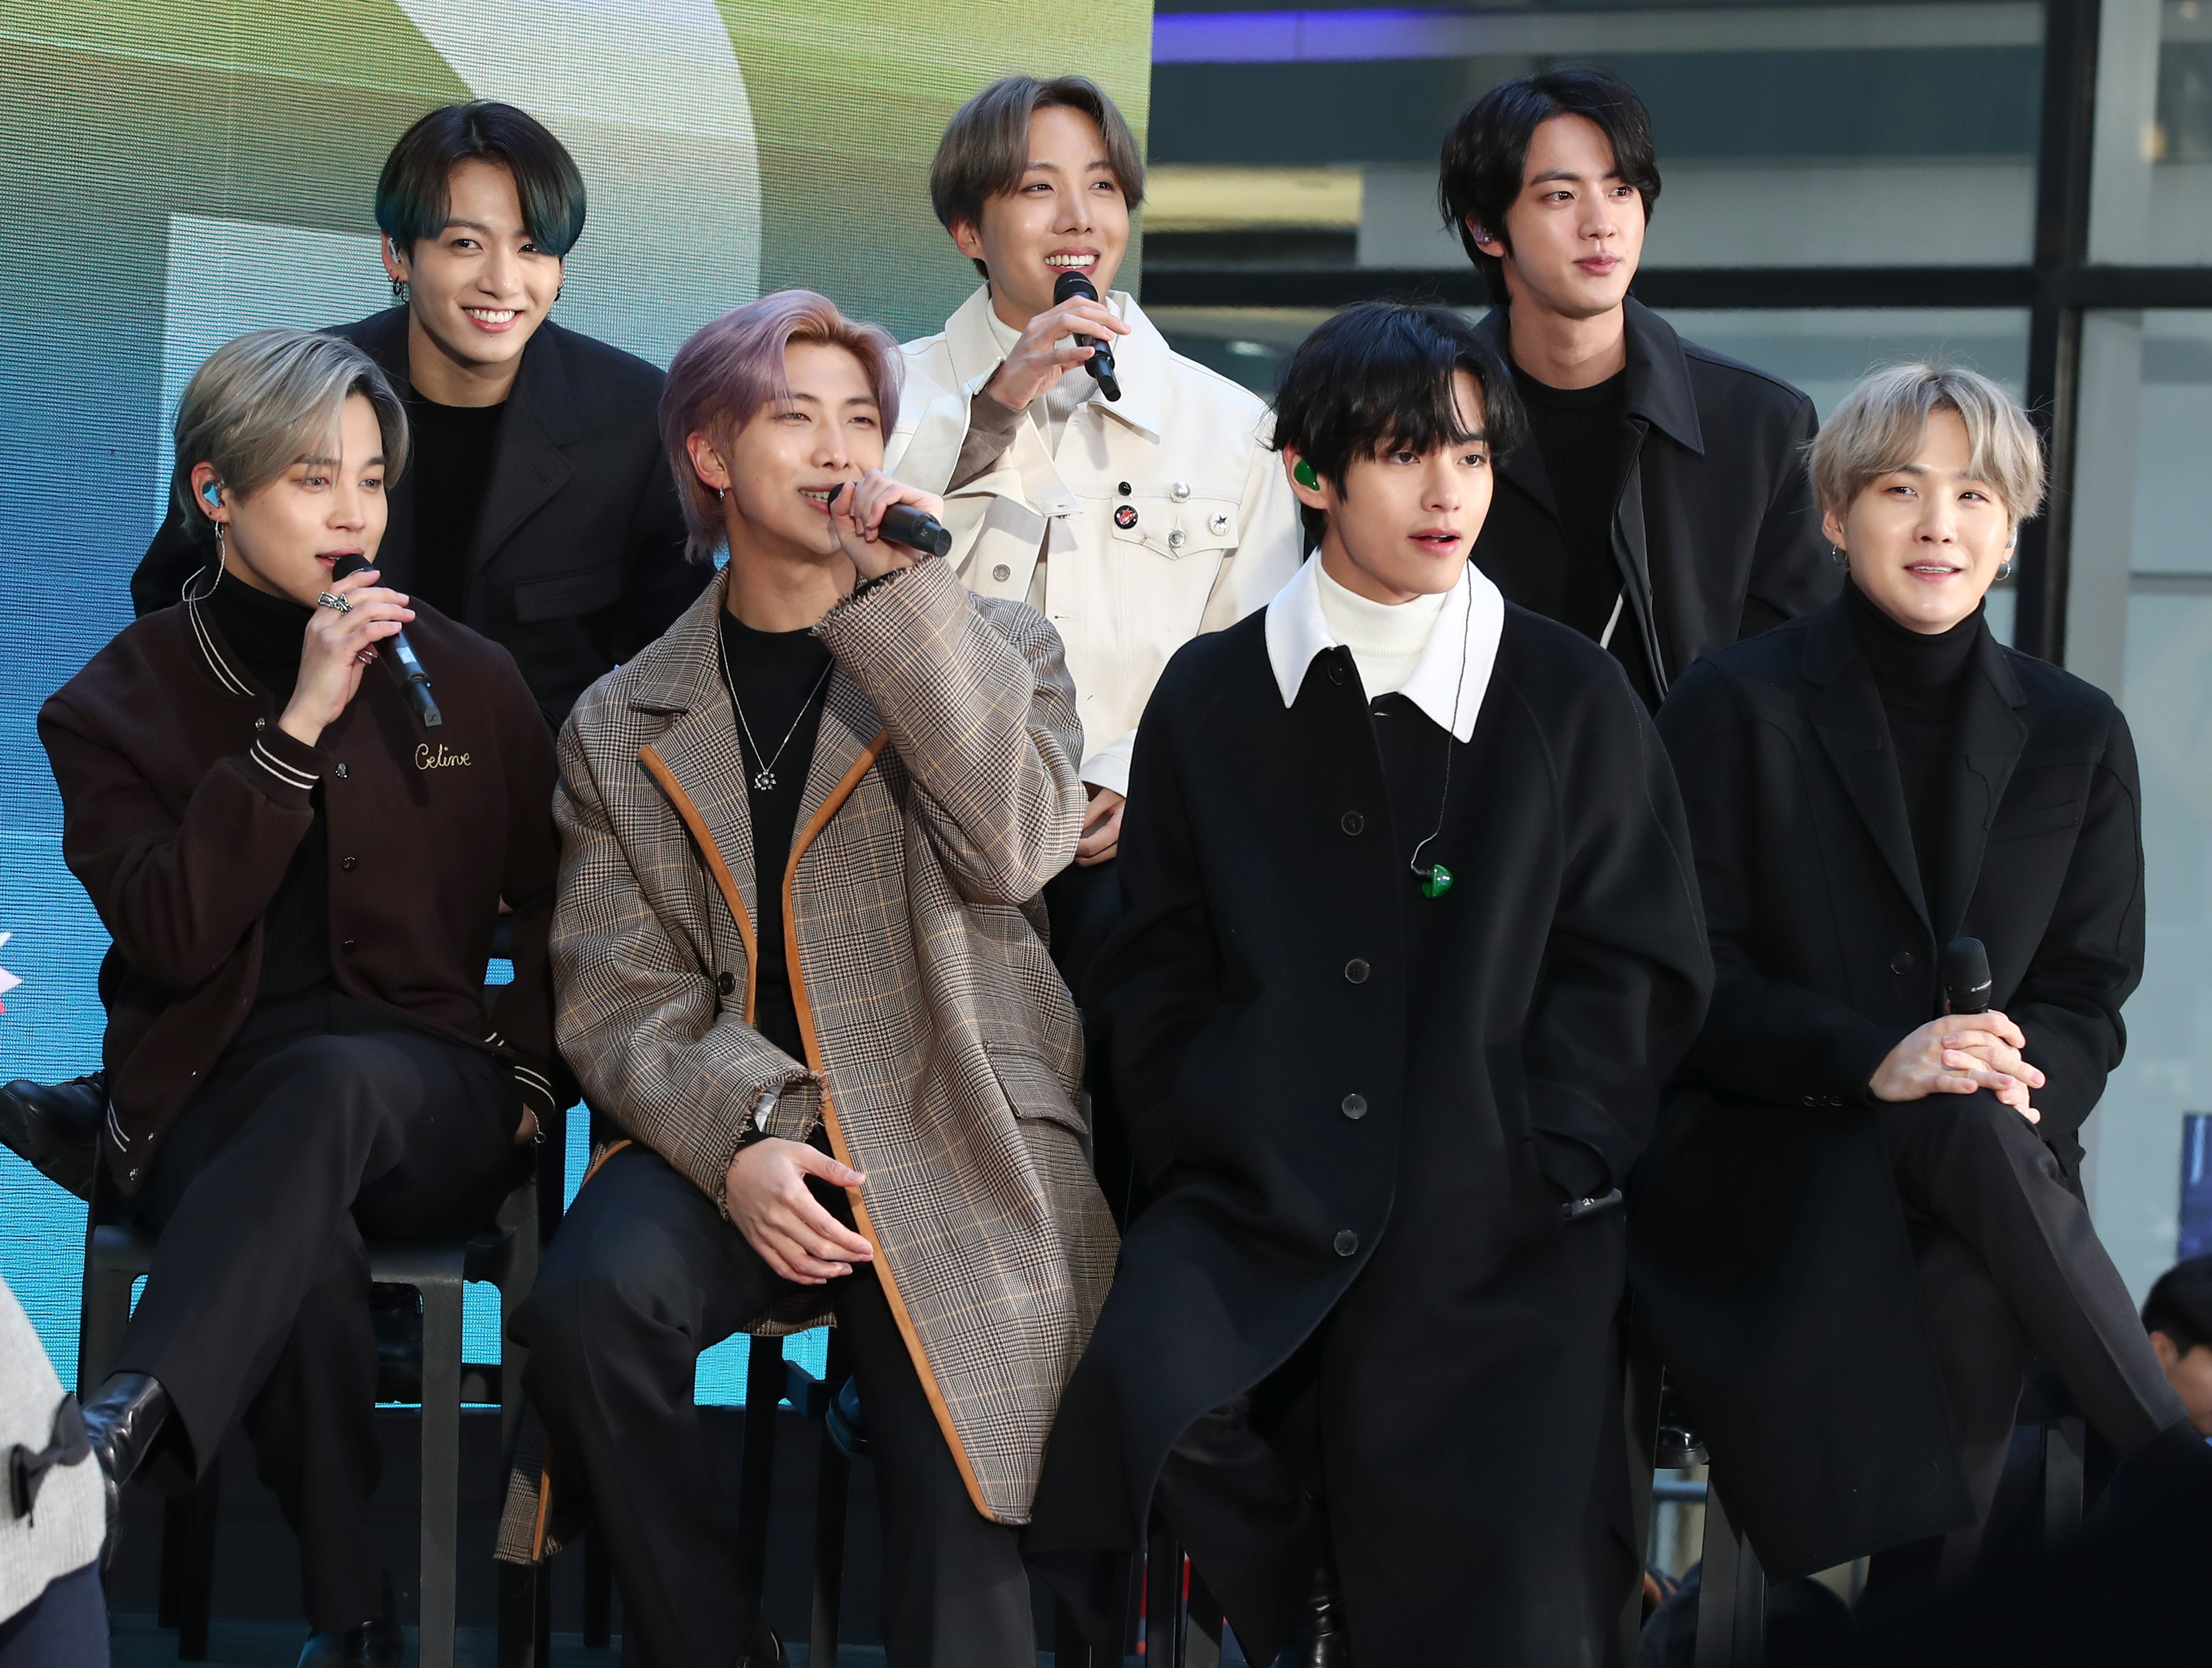 Jimin, Jungkook, RM, J-Hope, V, Jin, and SUGA of the K-pop boy band BTS visit the  Today  Show at Rockefeller Plaza on February 21, 2020 in New York City.